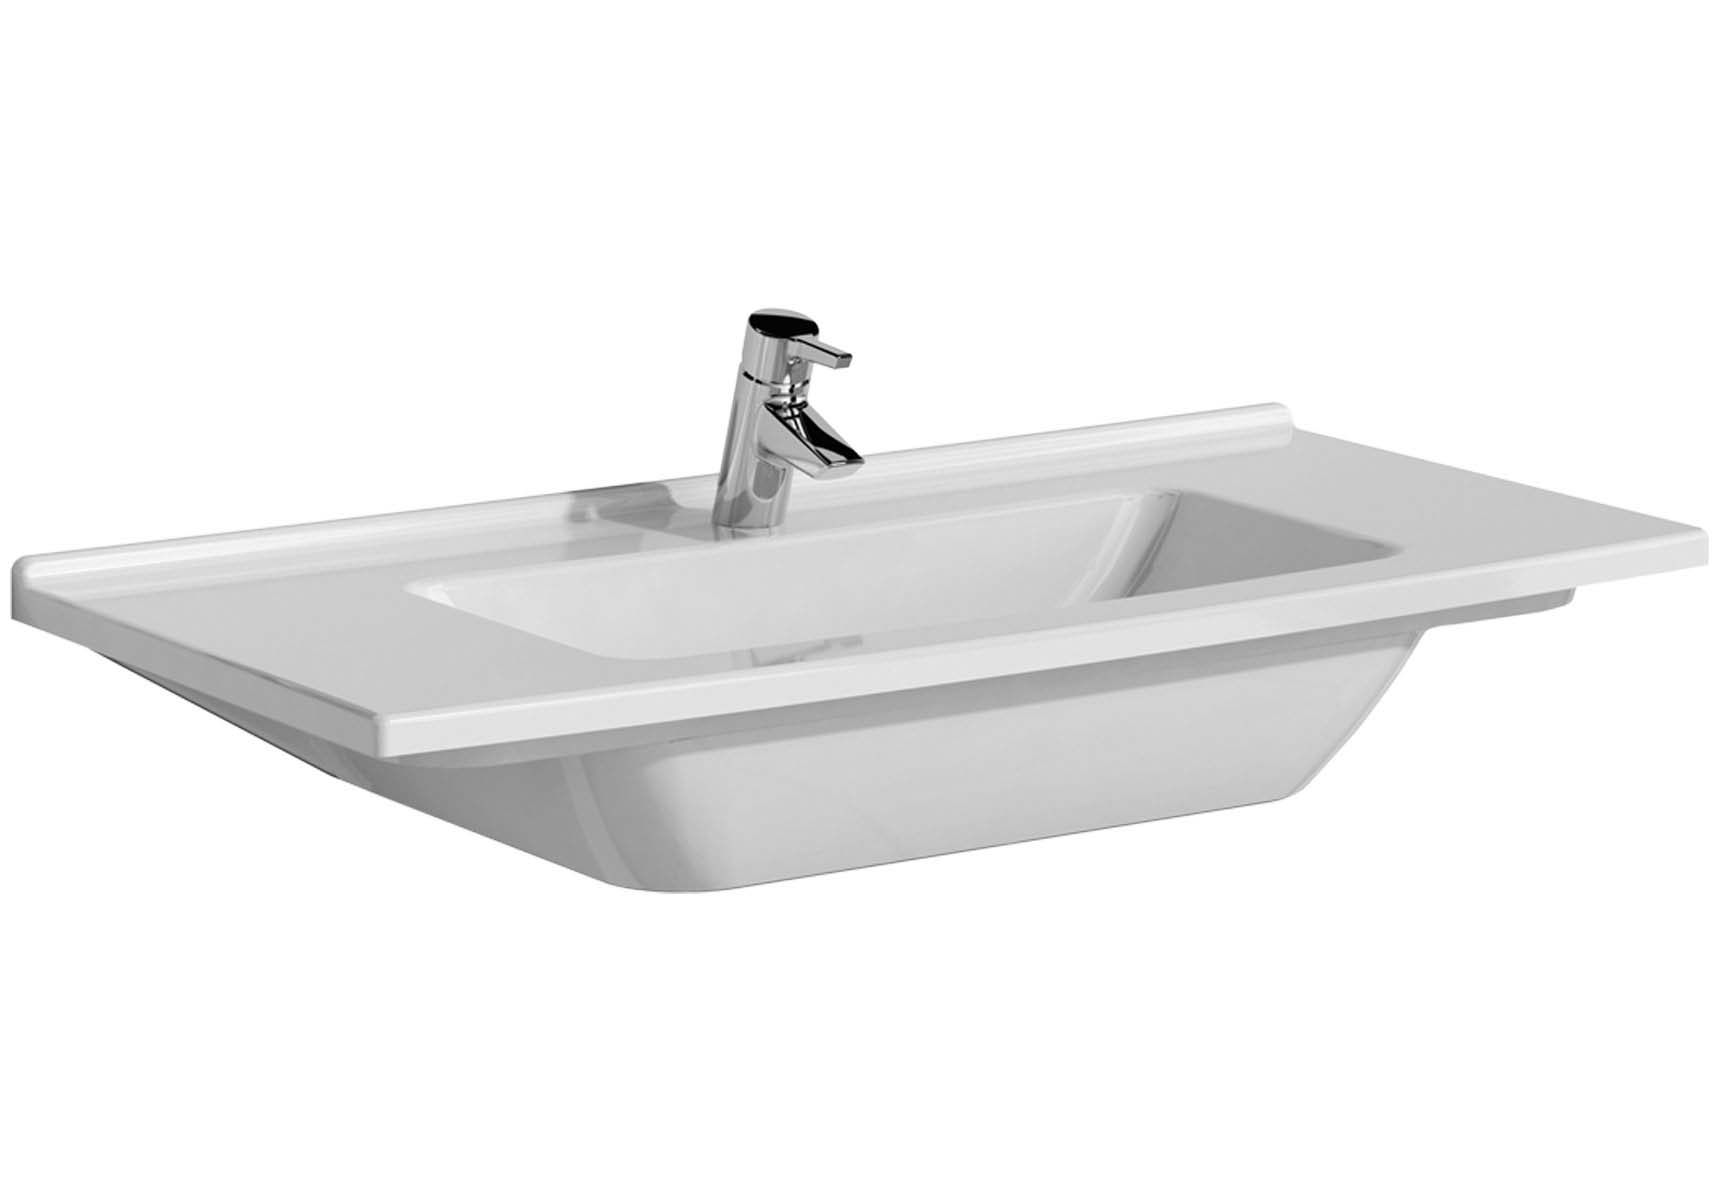 S50 Vanity Basin, 100cm with Middle Tap Hole, with Side Holes